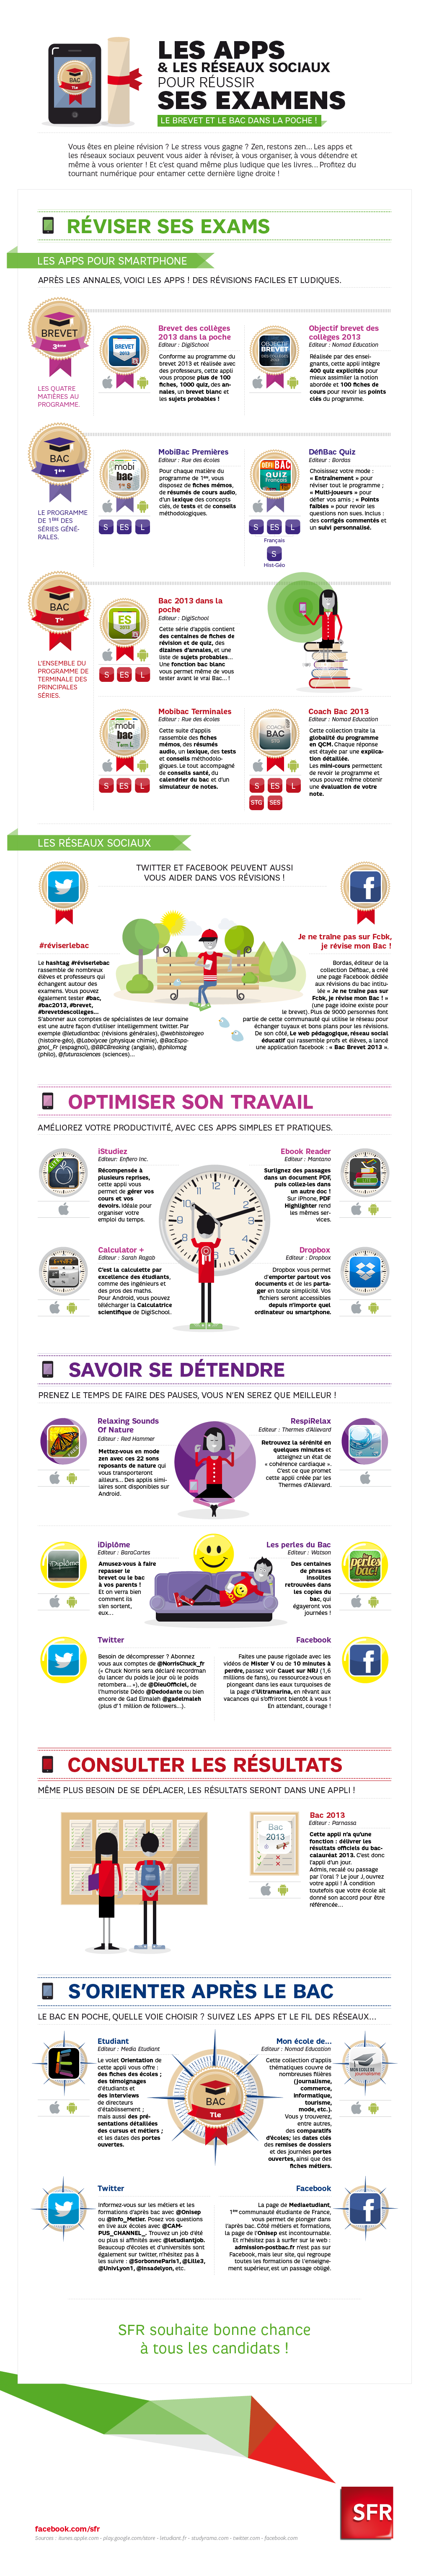 infographie-applications-iphone-bac-brevet